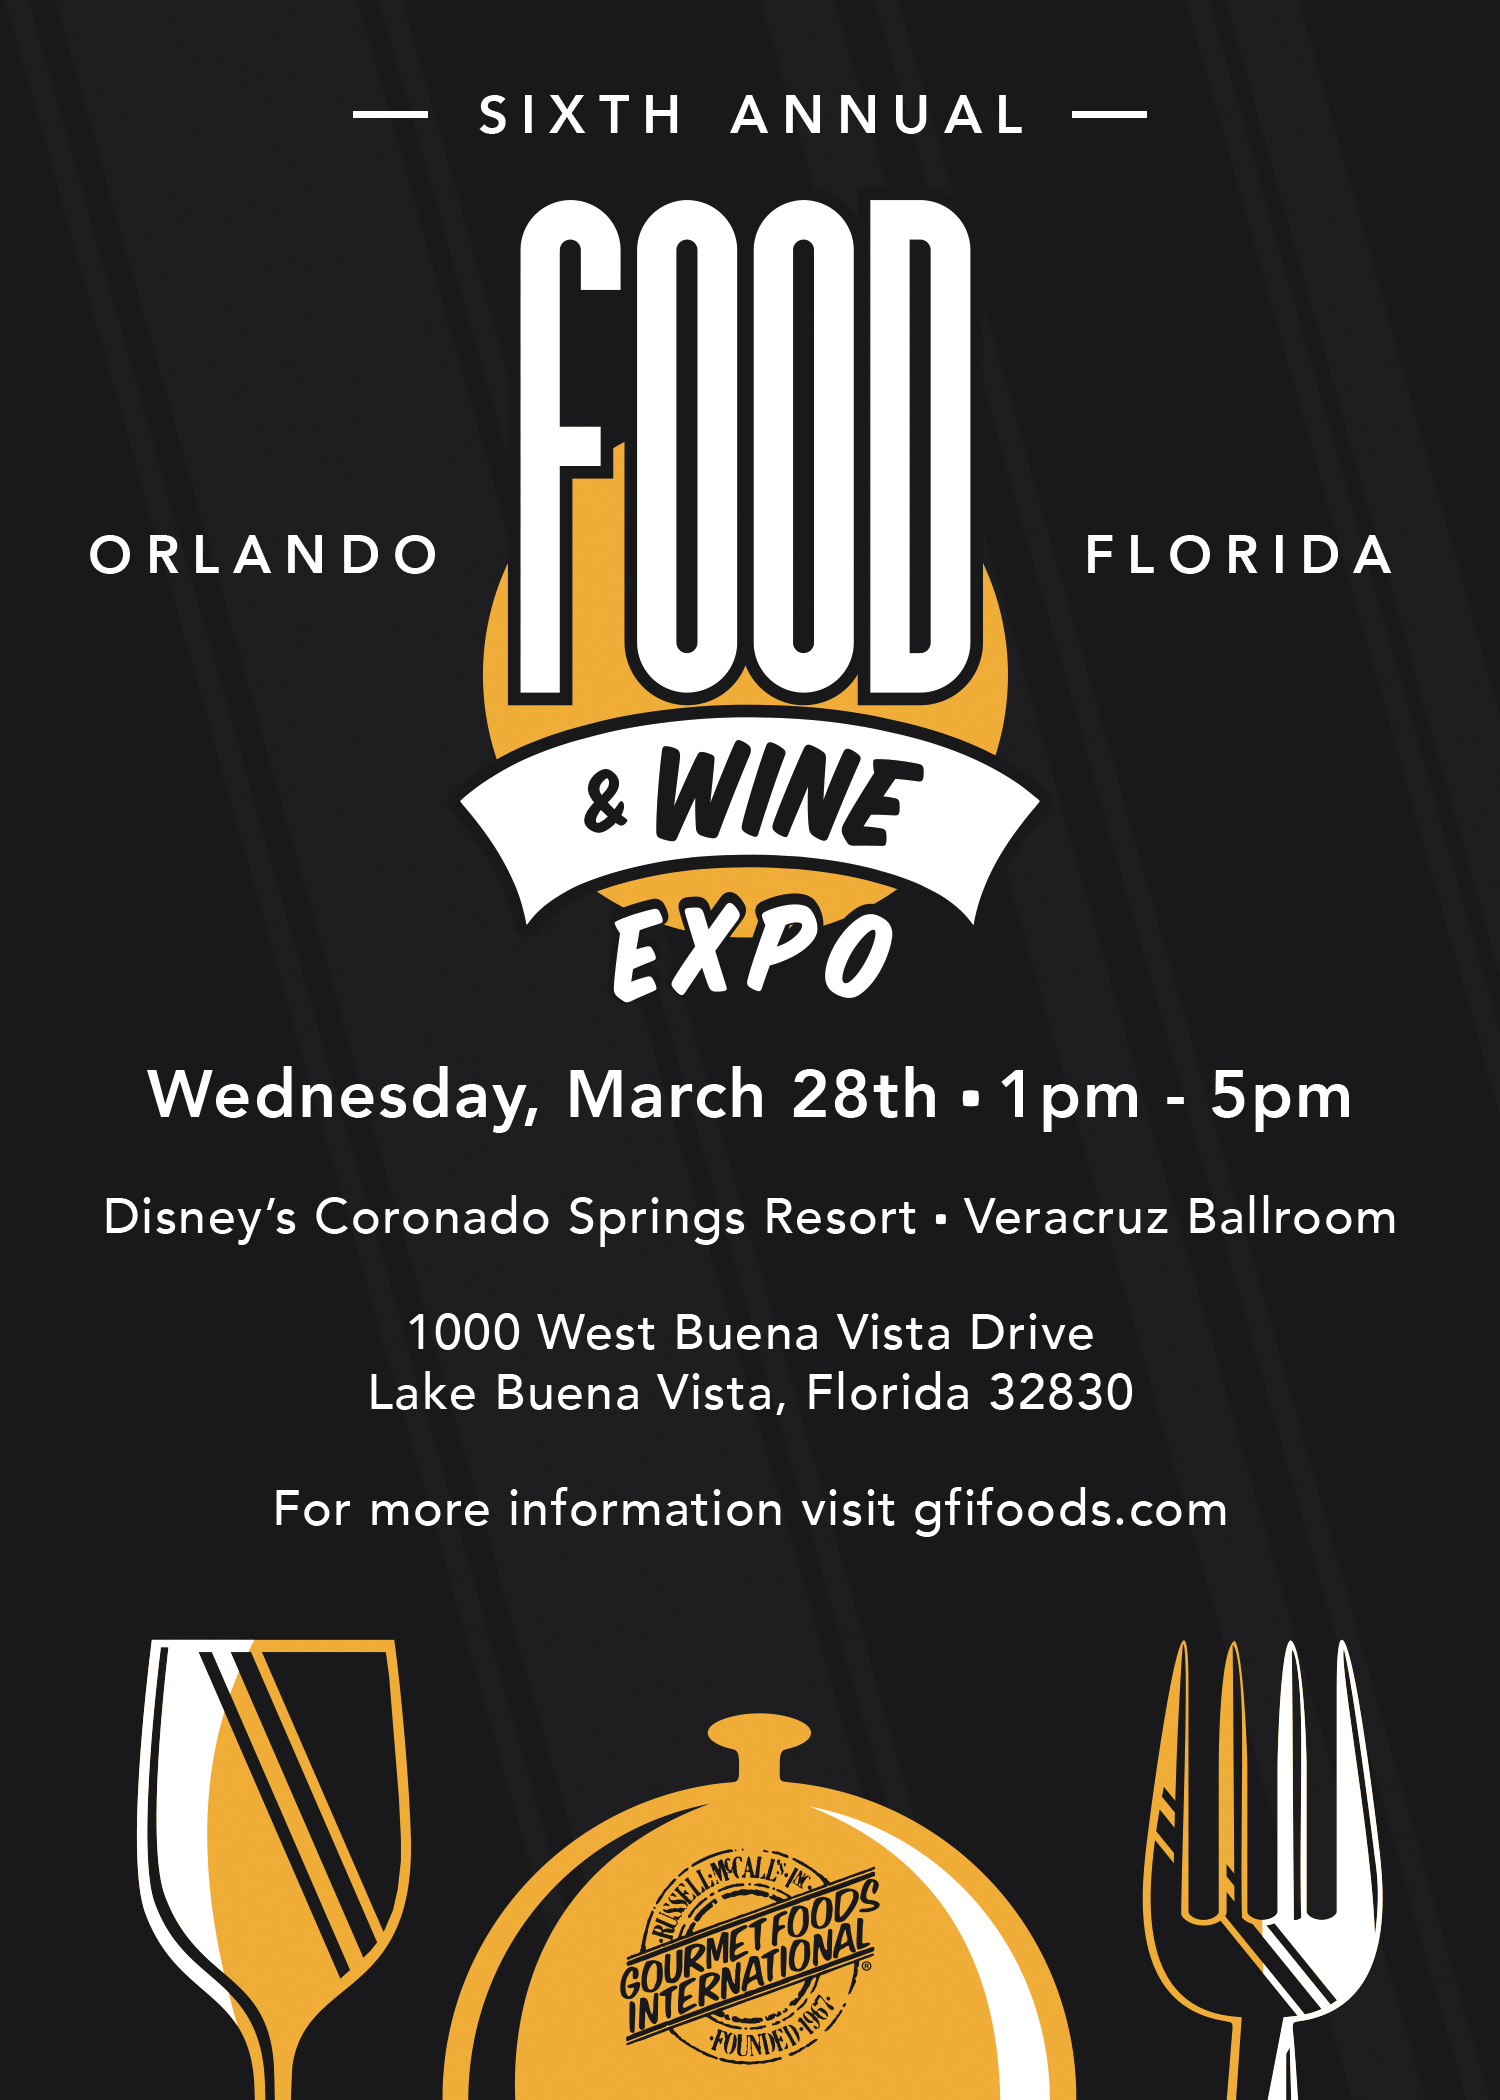 Orlando Food & Wine Expo